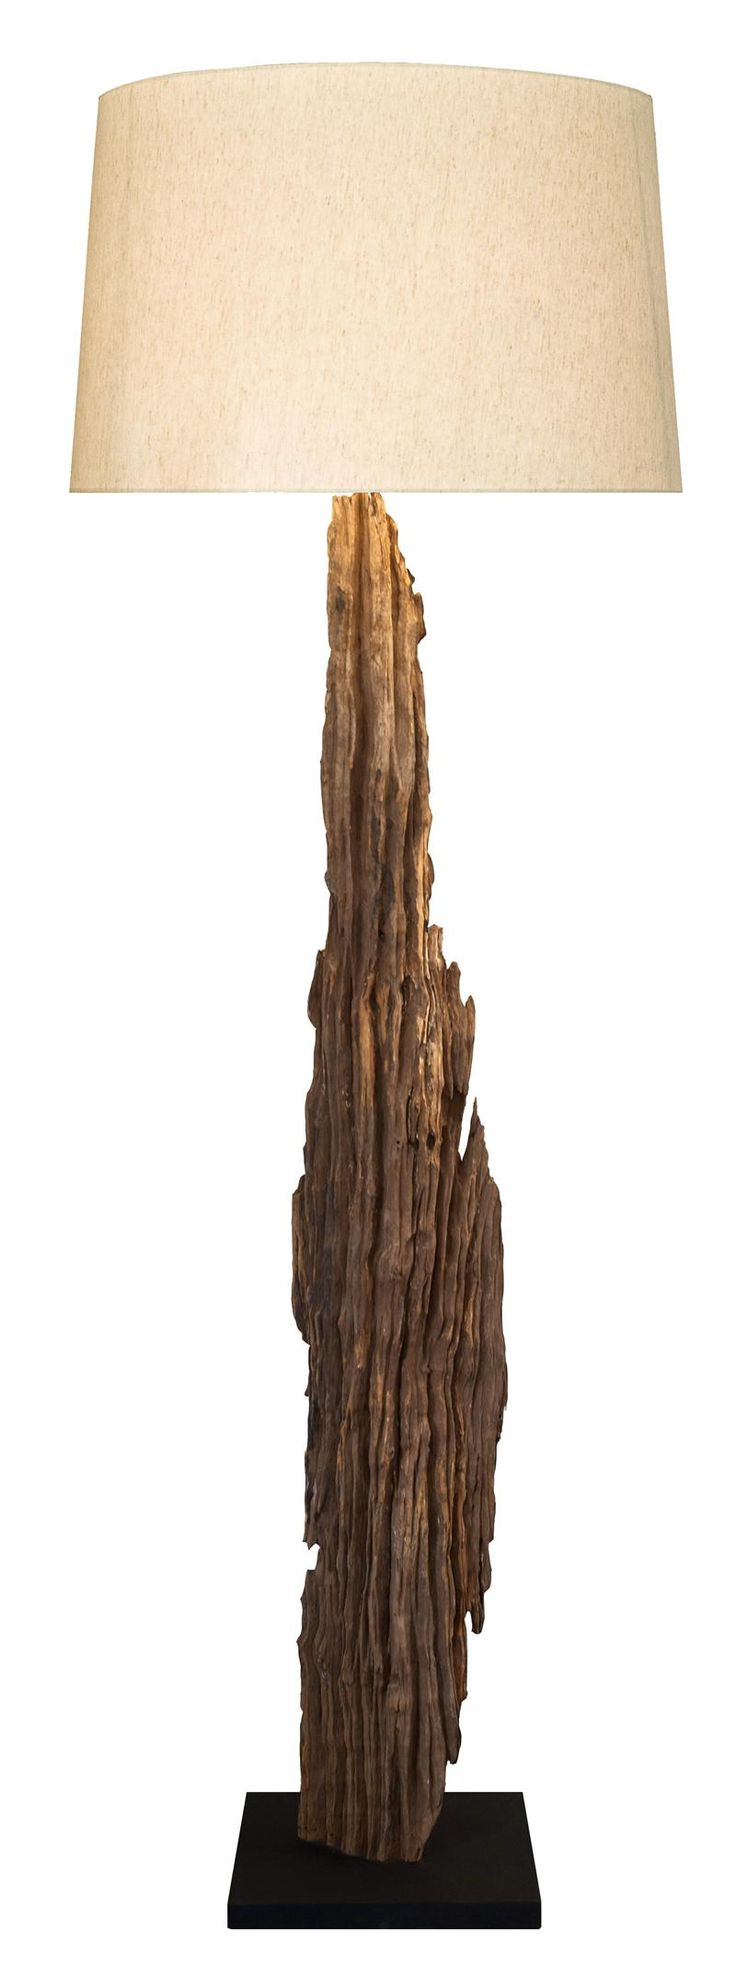 Driftwood Floor Lamp made of natural driftwood with coarse linen shade. | StylishBeachHome.com   Elegance, sophistication, and natural beauty are some of the words that describe this lamp, made of driftwood that were handpicked, then carefully inspected and lined from the bottom up by Scandinavian  designers to highlight its natural beautiful shape.